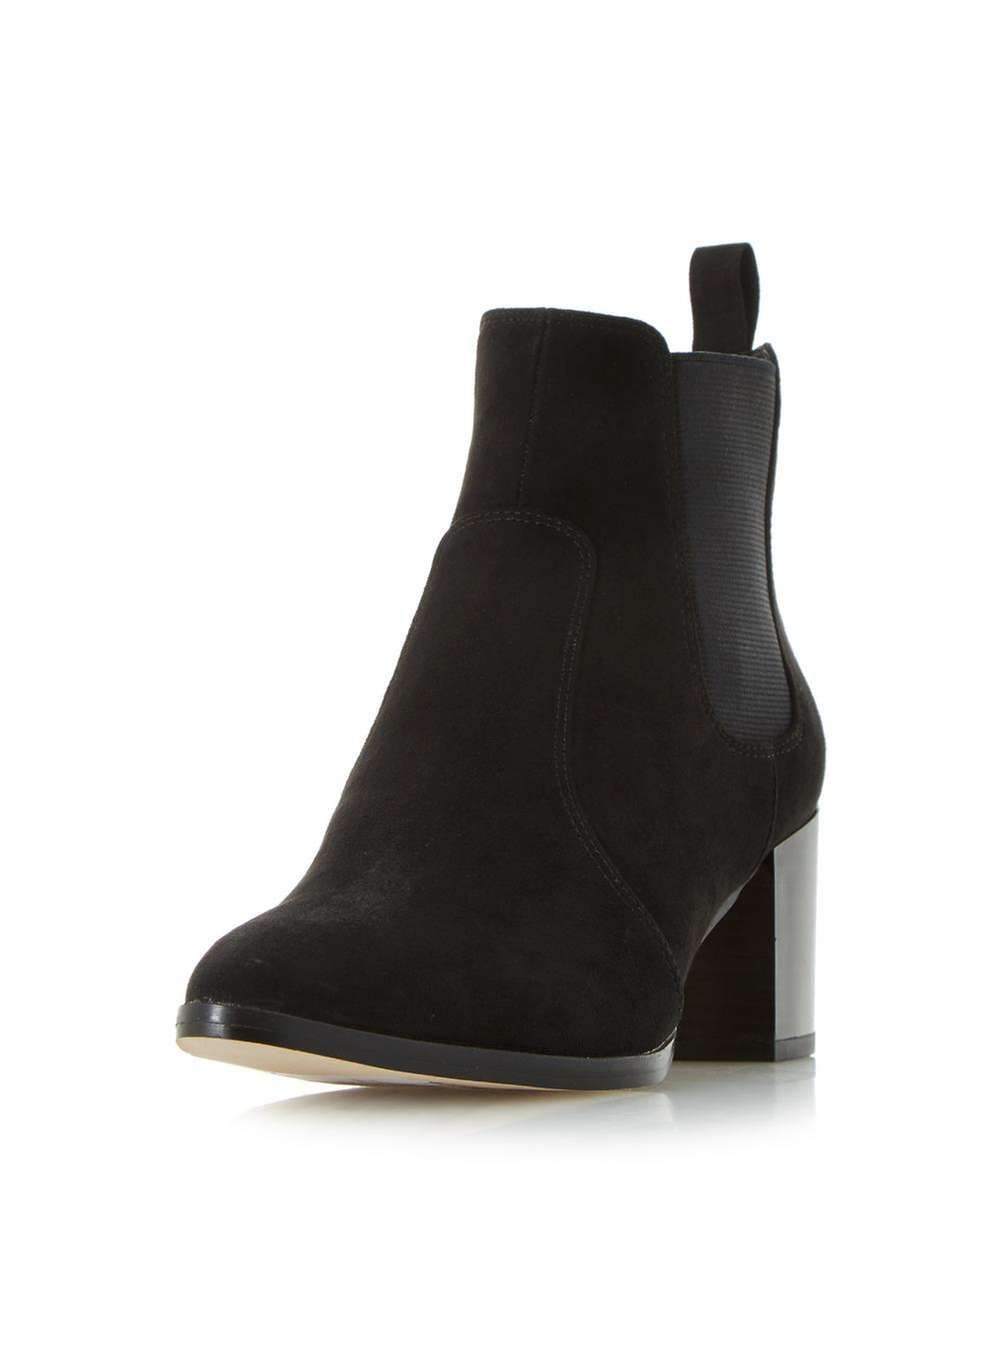 Dune Black 'Pagey' Ankle Boots